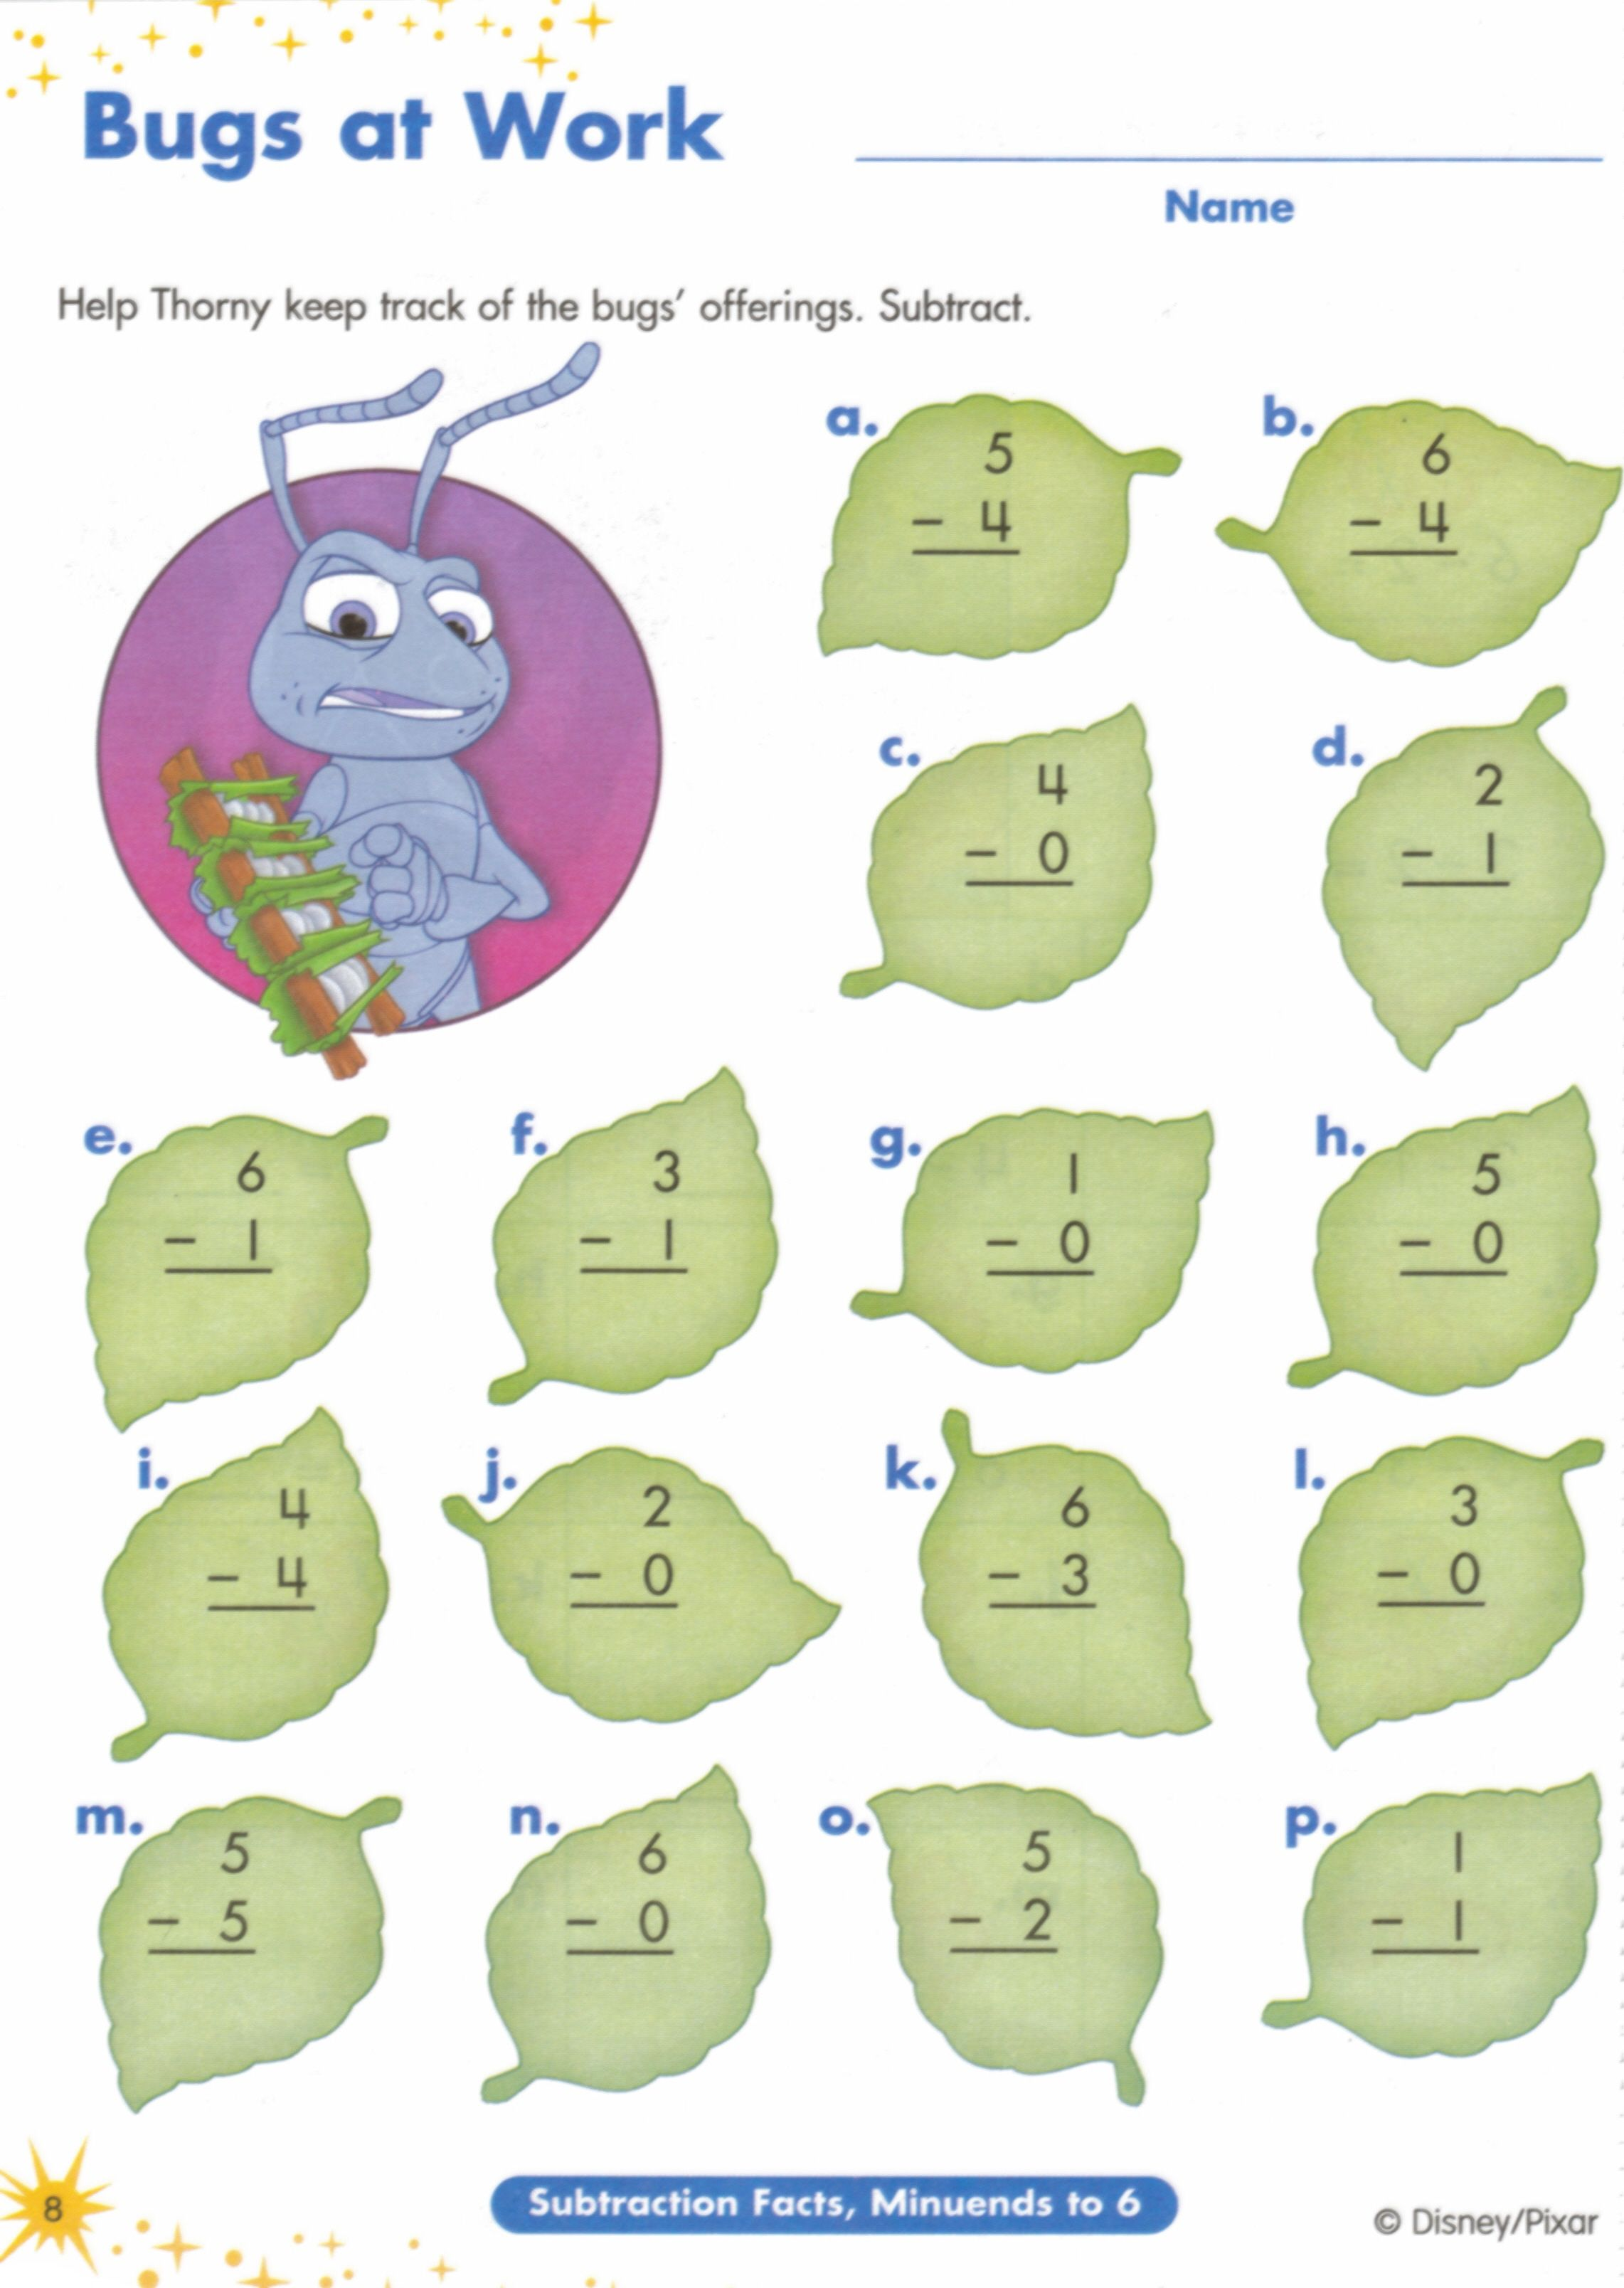 Proatmealus  Nice  Images About Worksheets On Pinterest  Fun Facts For Kids  With Exquisite  Images About Worksheets On Pinterest  Fun Facts For Kids Earth Day Worksheets And Jungles With Delectable Electrical Circuit Worksheets Also Multiple Allele Worksheet In Addition Wells Fargo Financial Worksheet Short Sale And Adding Subtracting Fractions Worksheets As Well As English Language Worksheets Additionally Grammar Worksheet Pdf From Pinterestcom With Proatmealus  Exquisite  Images About Worksheets On Pinterest  Fun Facts For Kids  With Delectable  Images About Worksheets On Pinterest  Fun Facts For Kids Earth Day Worksheets And Jungles And Nice Electrical Circuit Worksheets Also Multiple Allele Worksheet In Addition Wells Fargo Financial Worksheet Short Sale From Pinterestcom